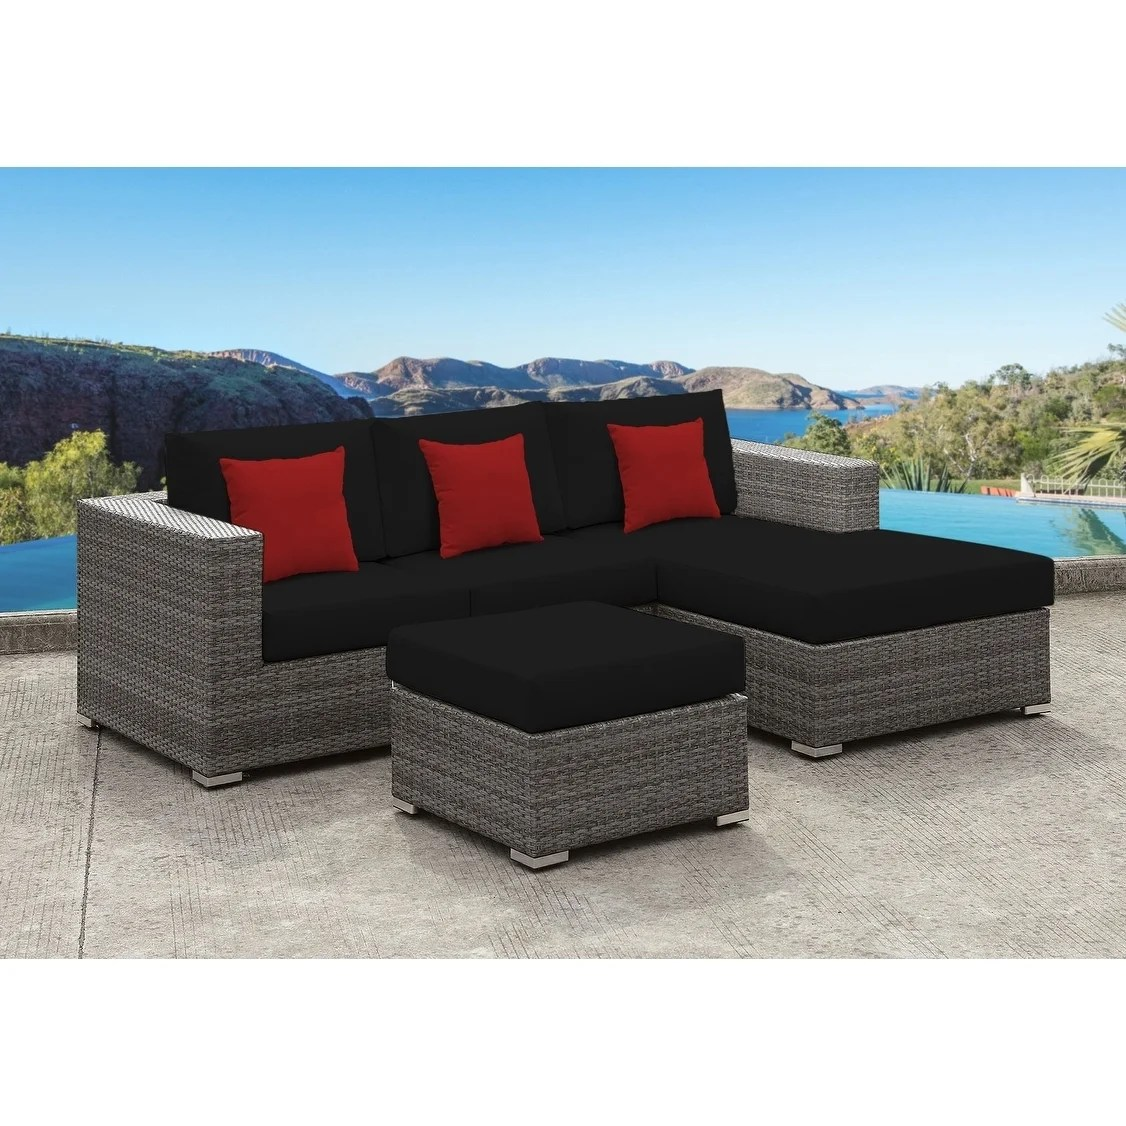 solis lusso 4 piece sectional patio set black cushions red pillows